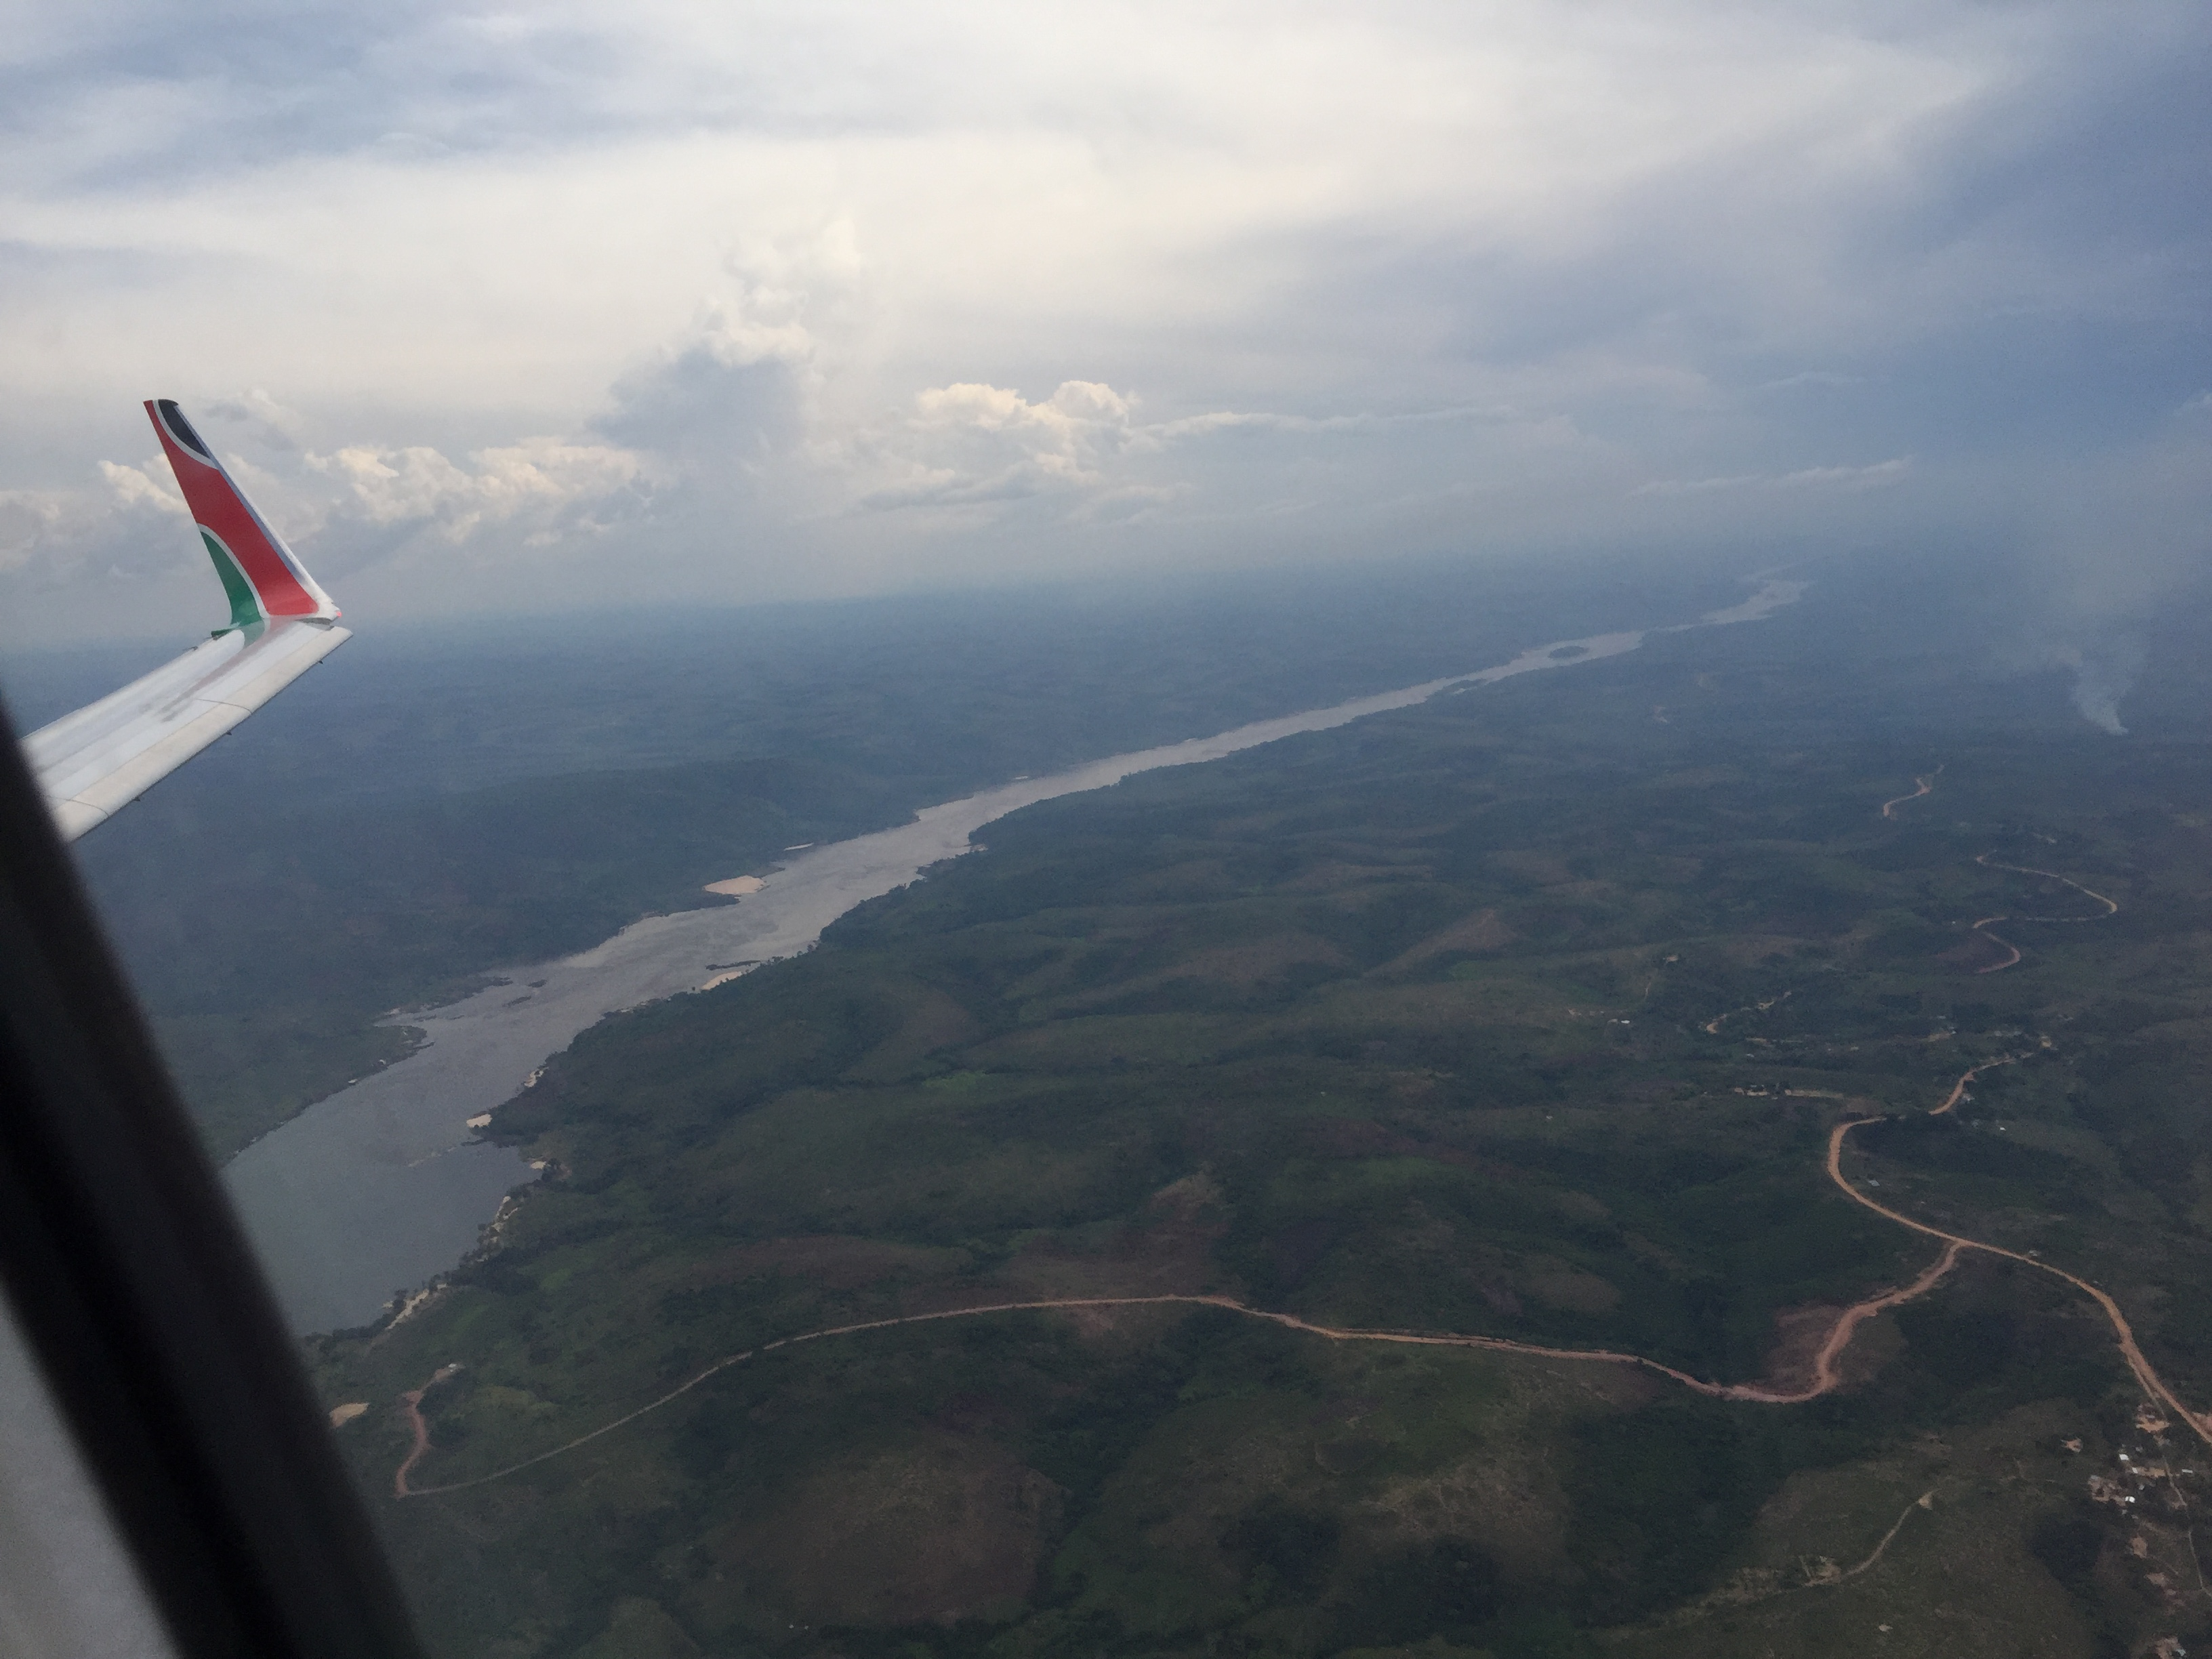 Getting to Brazzaville, capital of the Republic of Congo, is surprisingly easy from Nairobi: a five hour flight directly west, stopping in Kinshasa (capital of the the larger Democratic Republic of Congo, former Zaire) on the way.